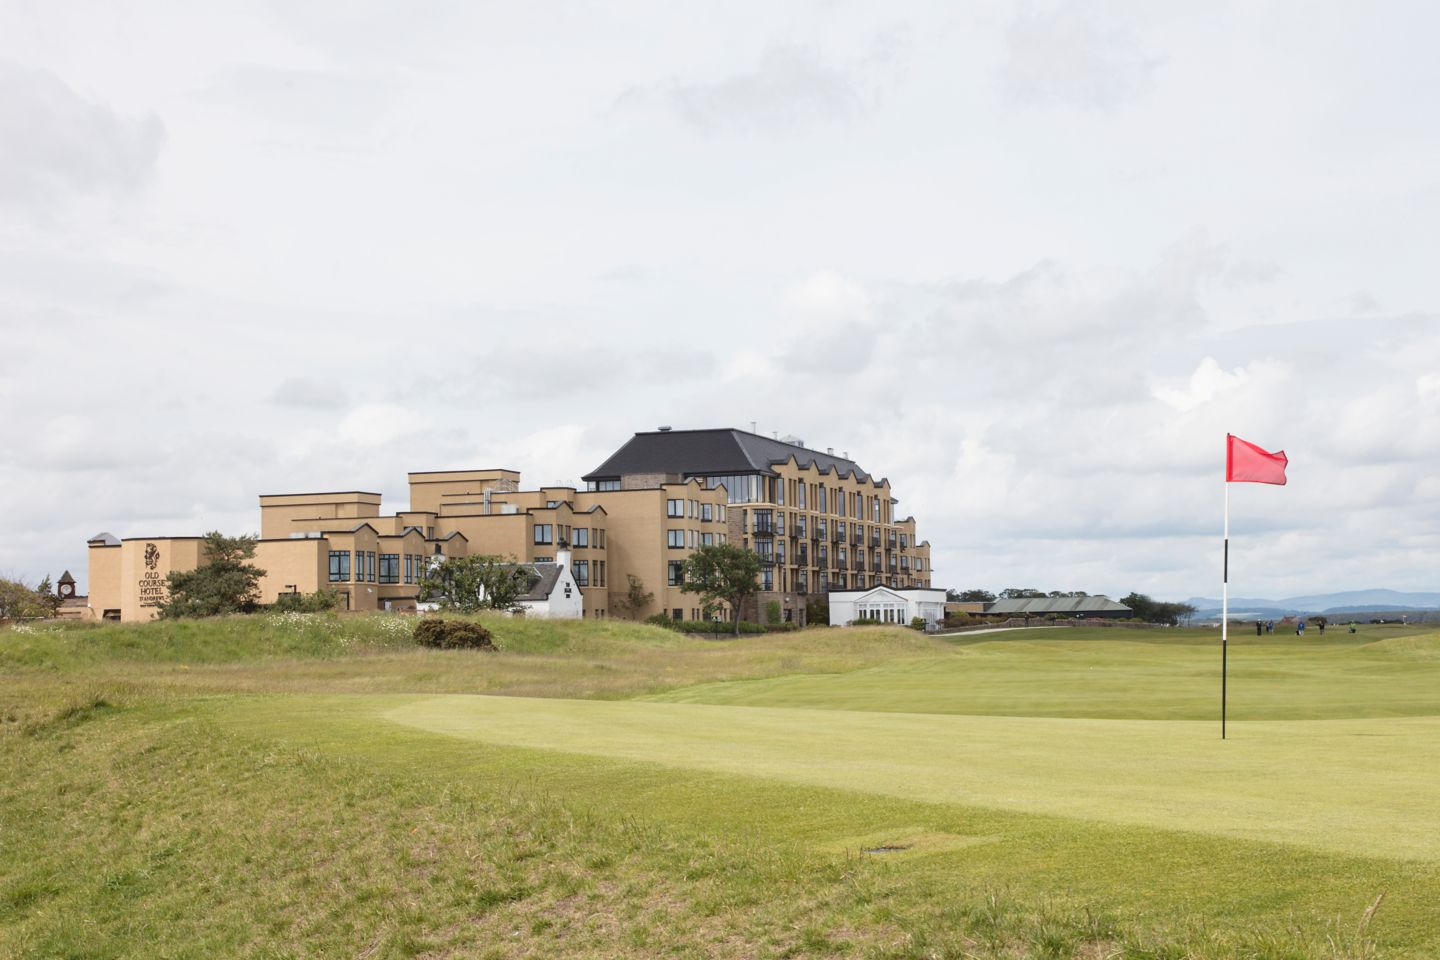 Looking over the 17th Green of the famous Old Course Golf Course towards the Old Course Hotel, Golf Resort & Spa